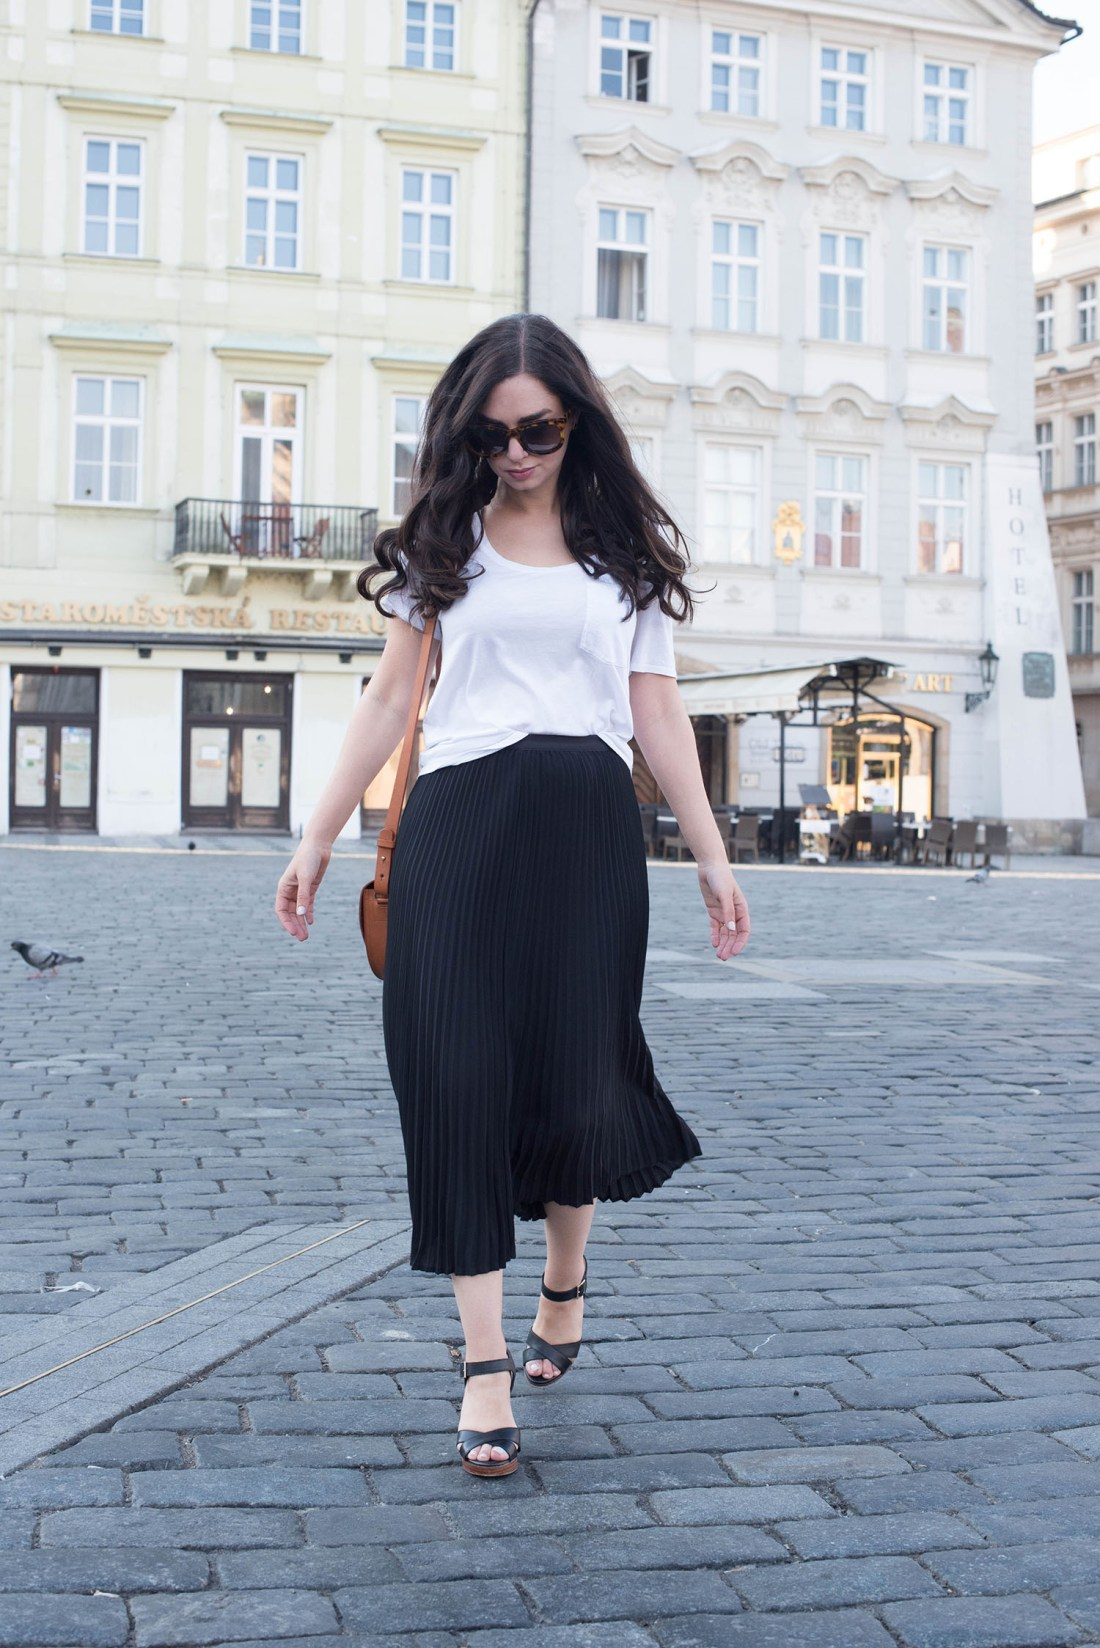 Fashion blogger Cee Fardoe of Coco & Vera walks through the Old Town Square in Prague wearing a white Aritzia tee, Le Chateau leather sandals and Anine Bing sunglasses